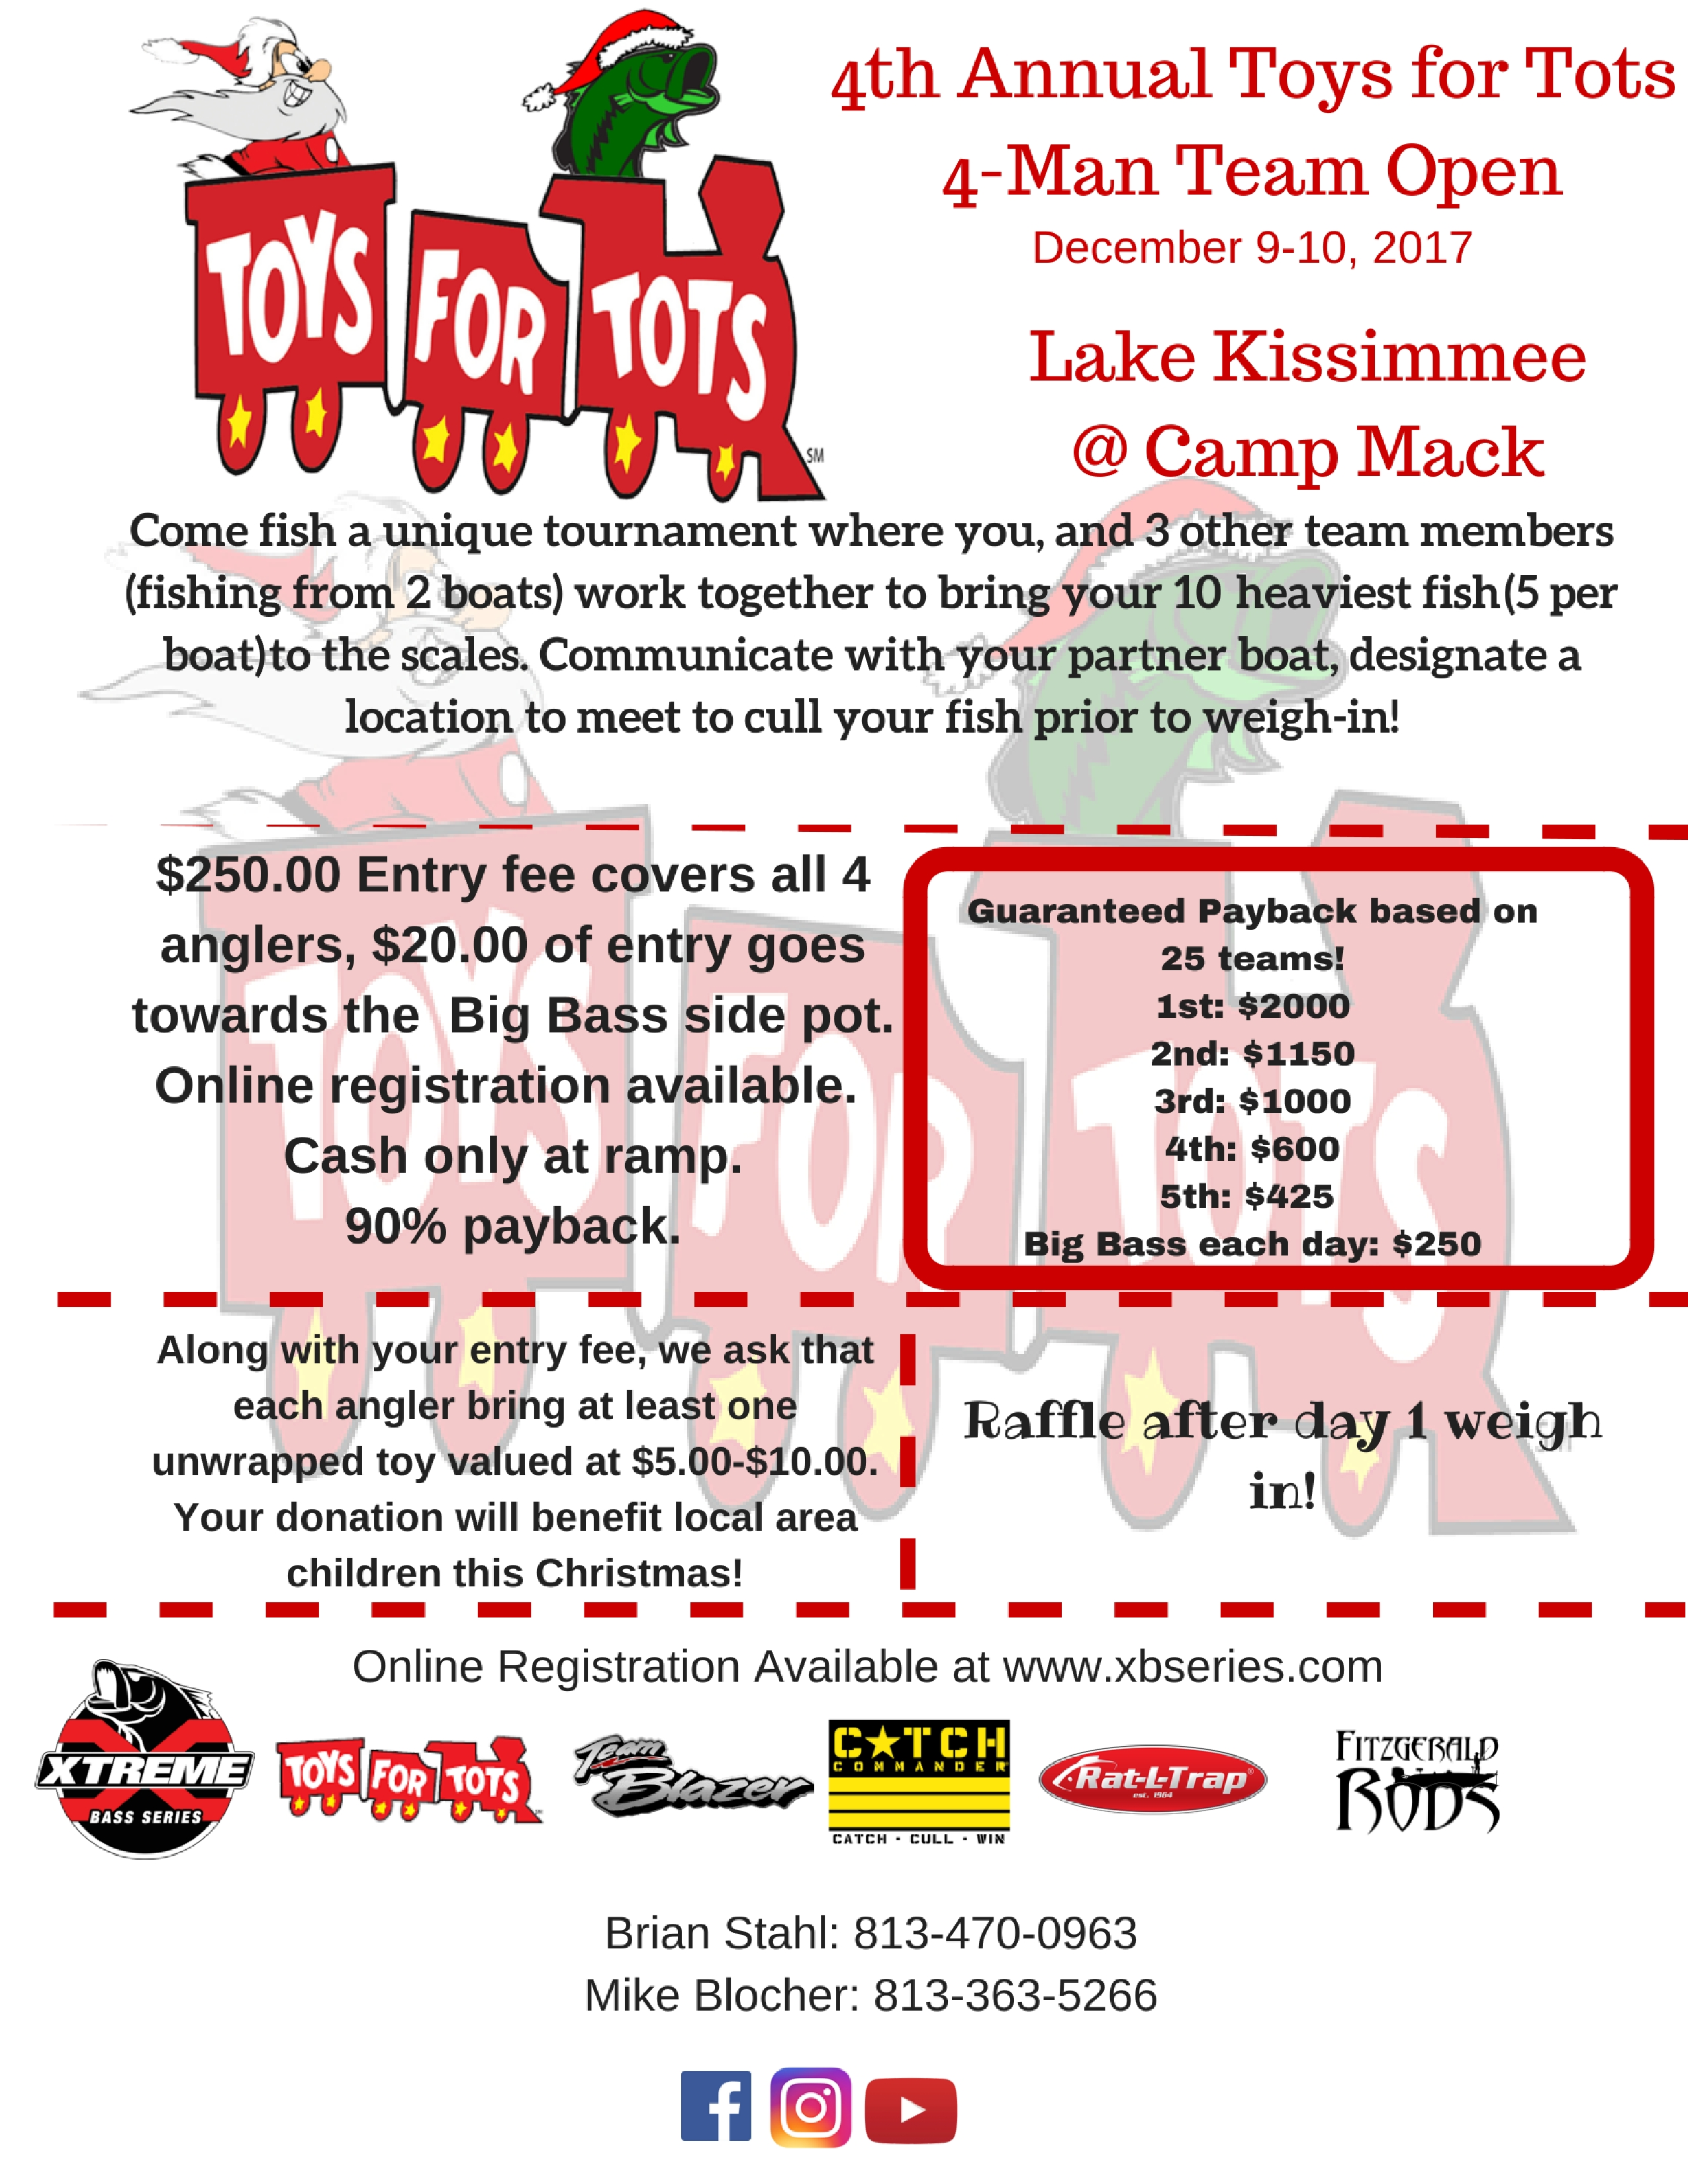 Toys For Tots Foundation Florida : Toys for tots last day to donate wow